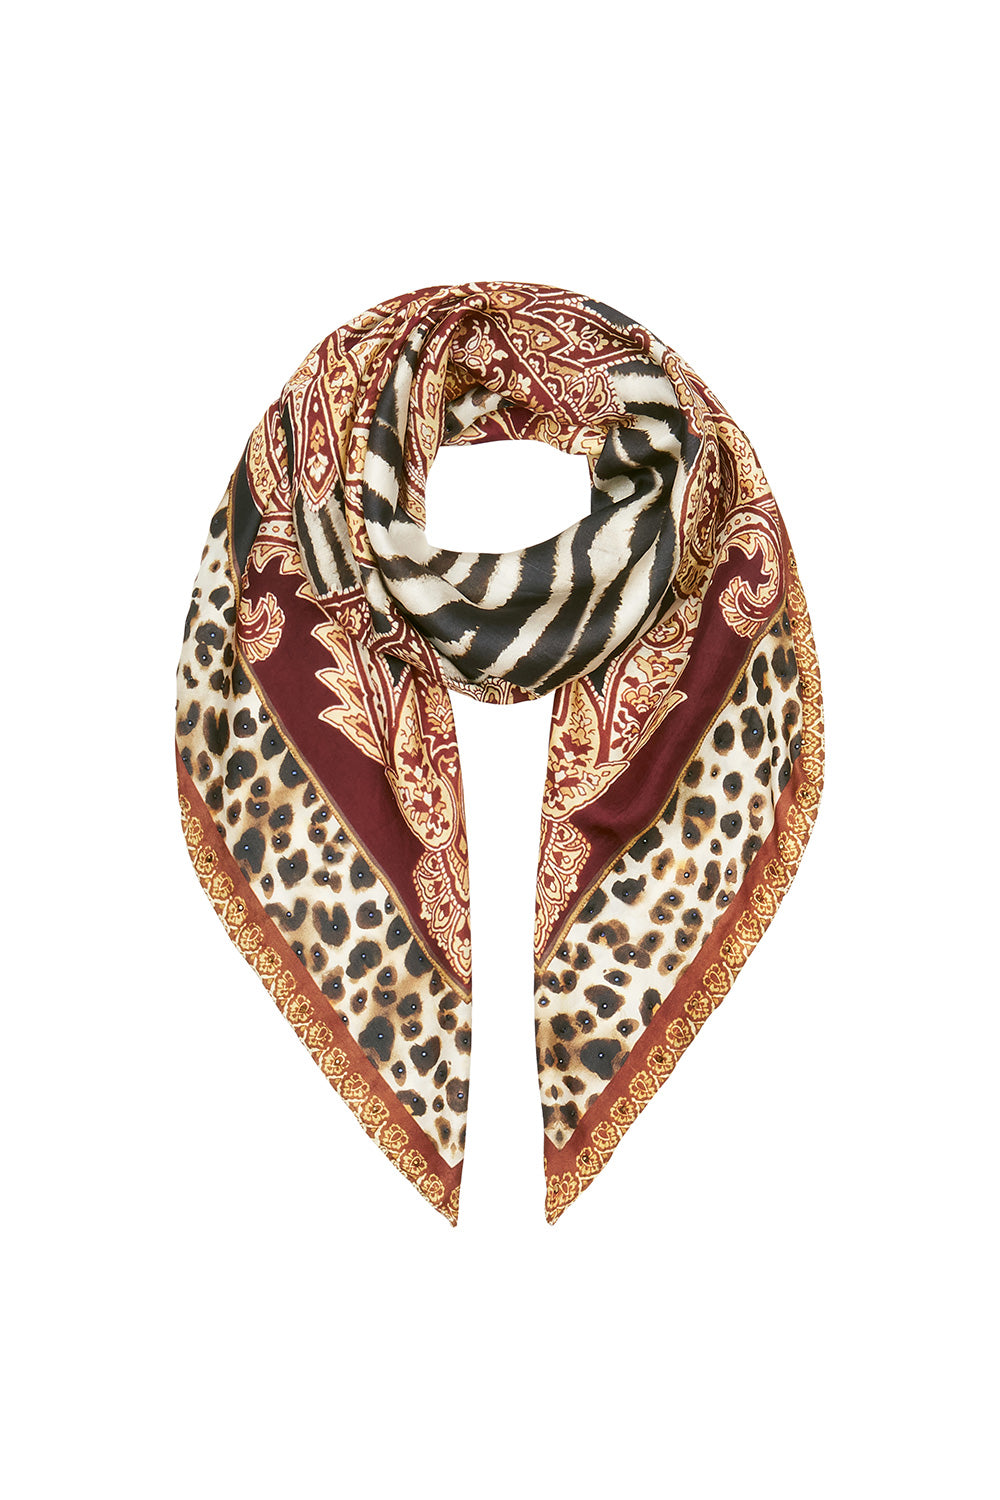 LARGE SQUARE SCARF WILD FIRE